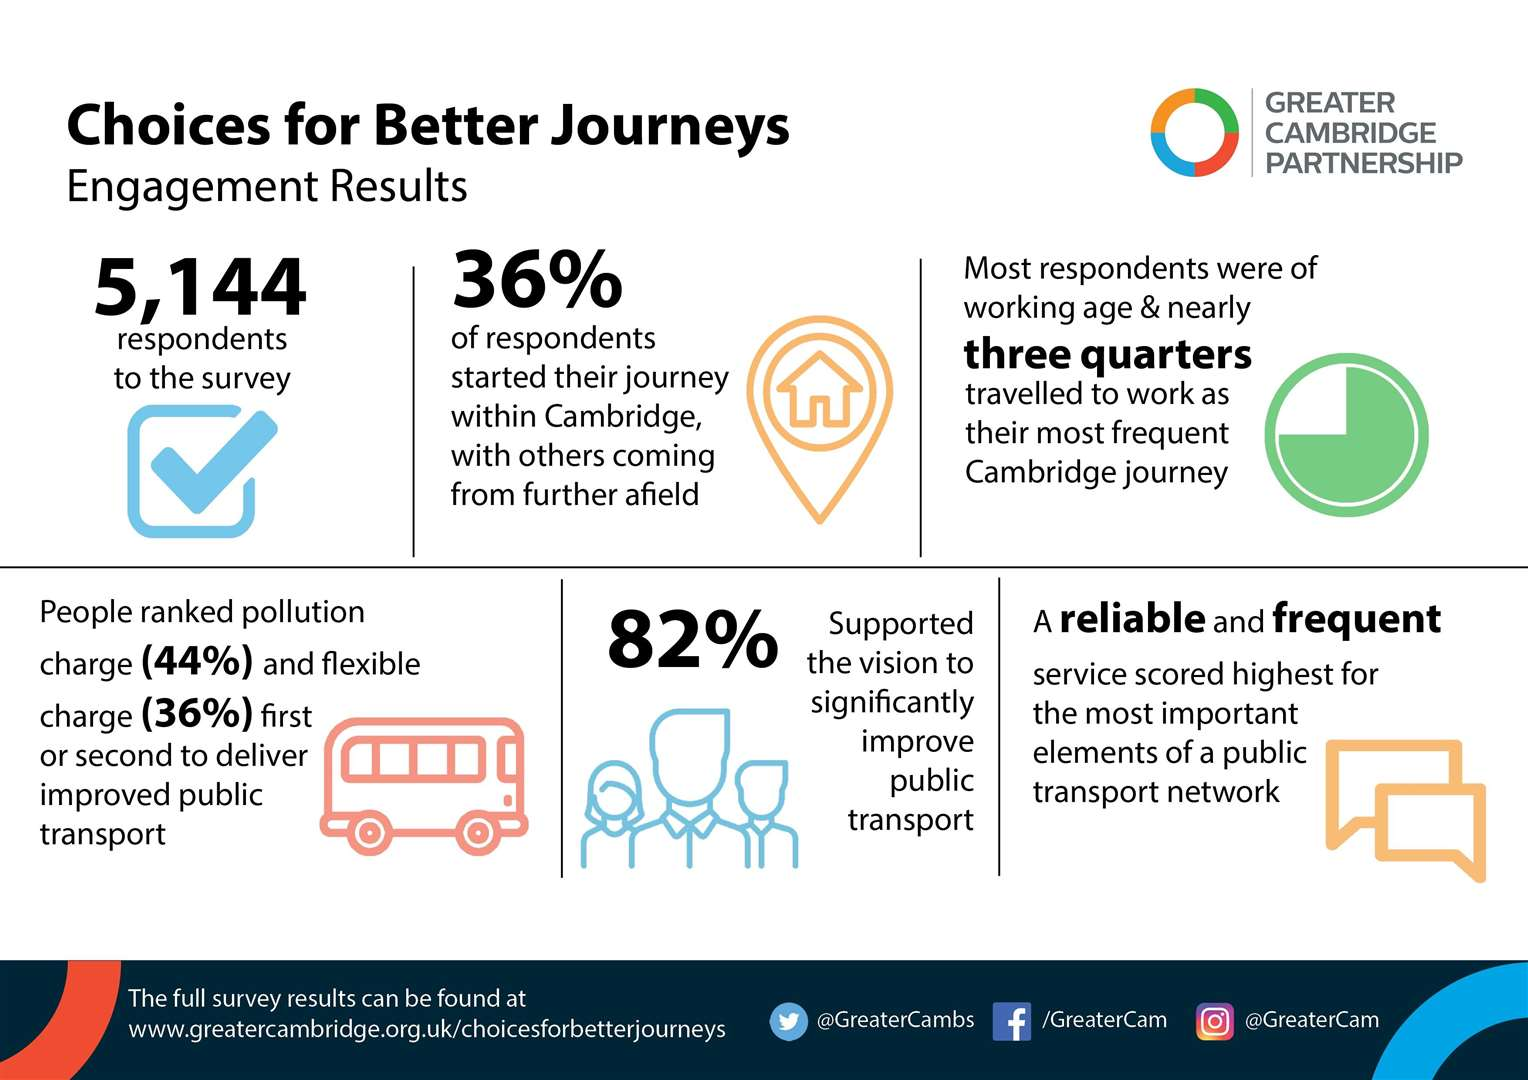 Choices for Better Journeys infographic (19218497)